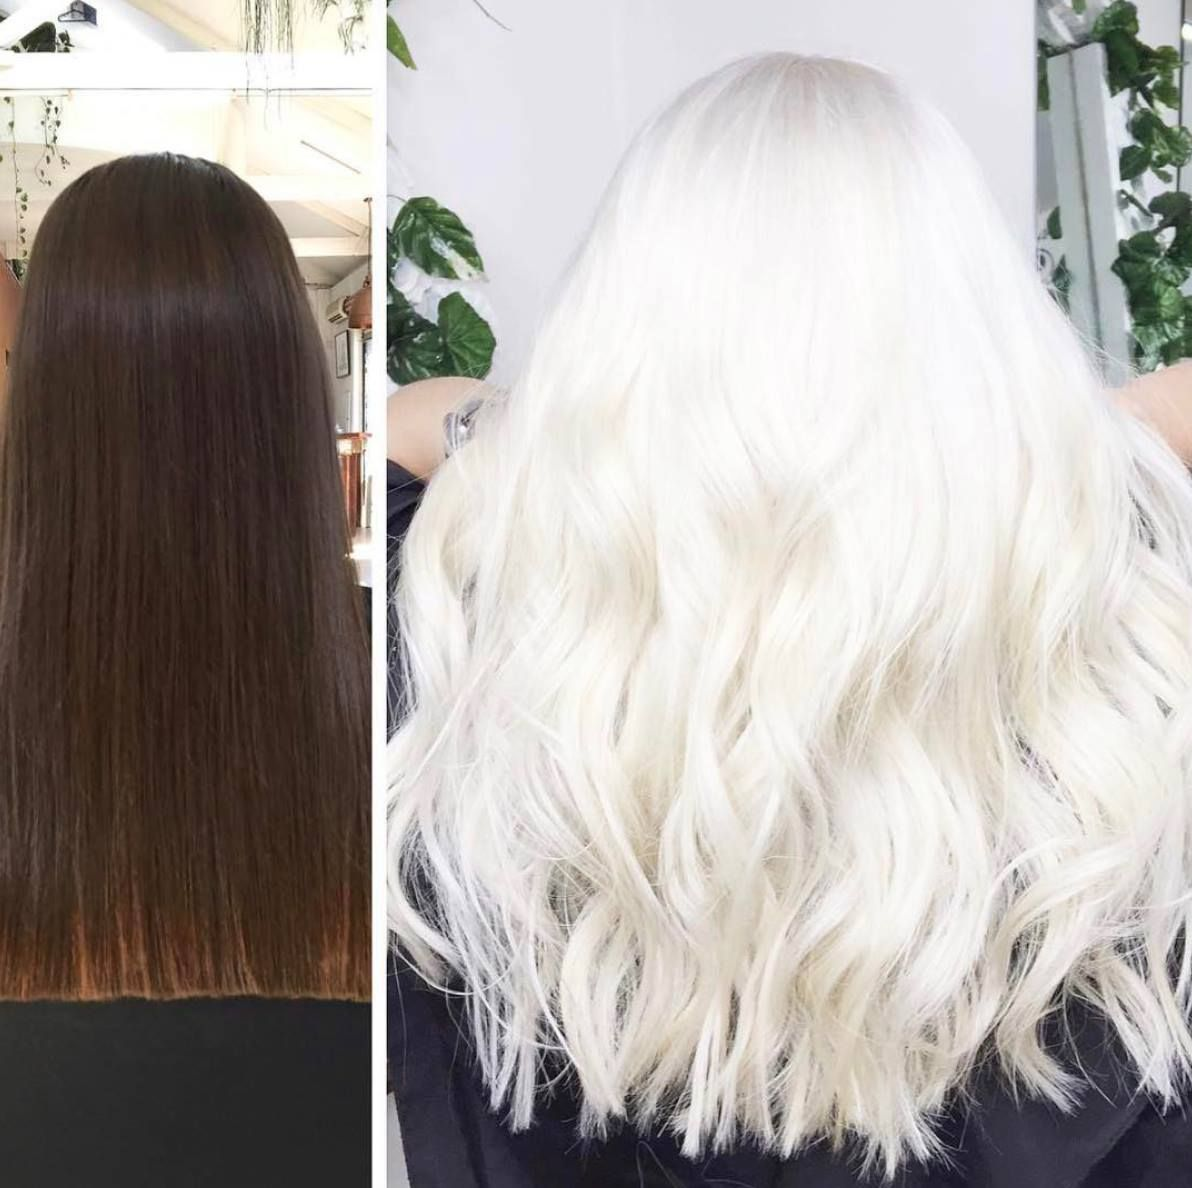 Who wants the formula!? STUNNING transformative color by A Loft Story Salon in Australia with Olaplex.